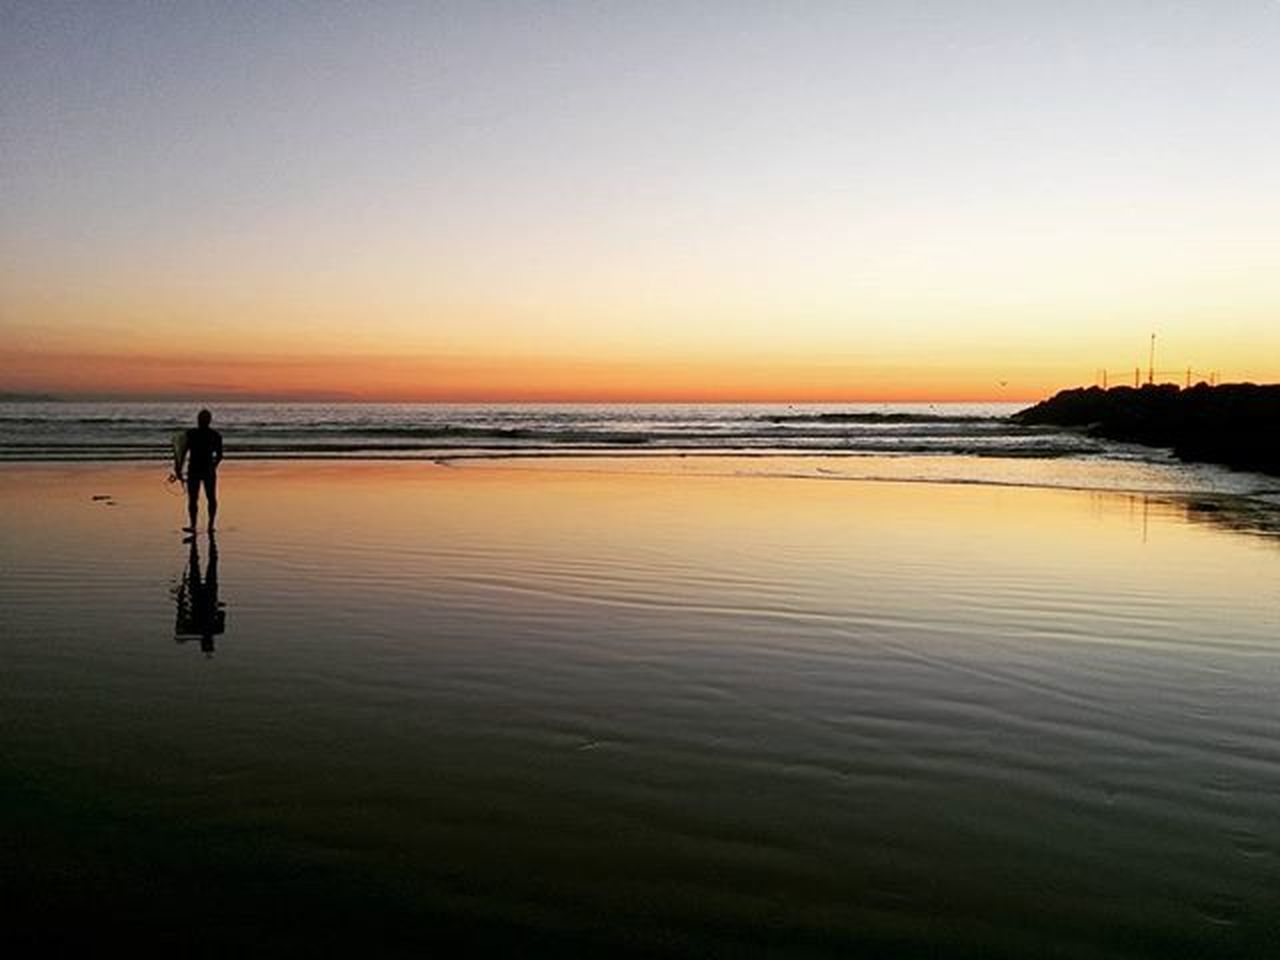 beach, sunset, water, sea, nature, reflection, scenics, tranquility, beauty in nature, silhouette, tranquil scene, sky, outdoors, full length, vacations, sand, horizon over water, one person, clear sky, people, one man only, adult, adults only, day